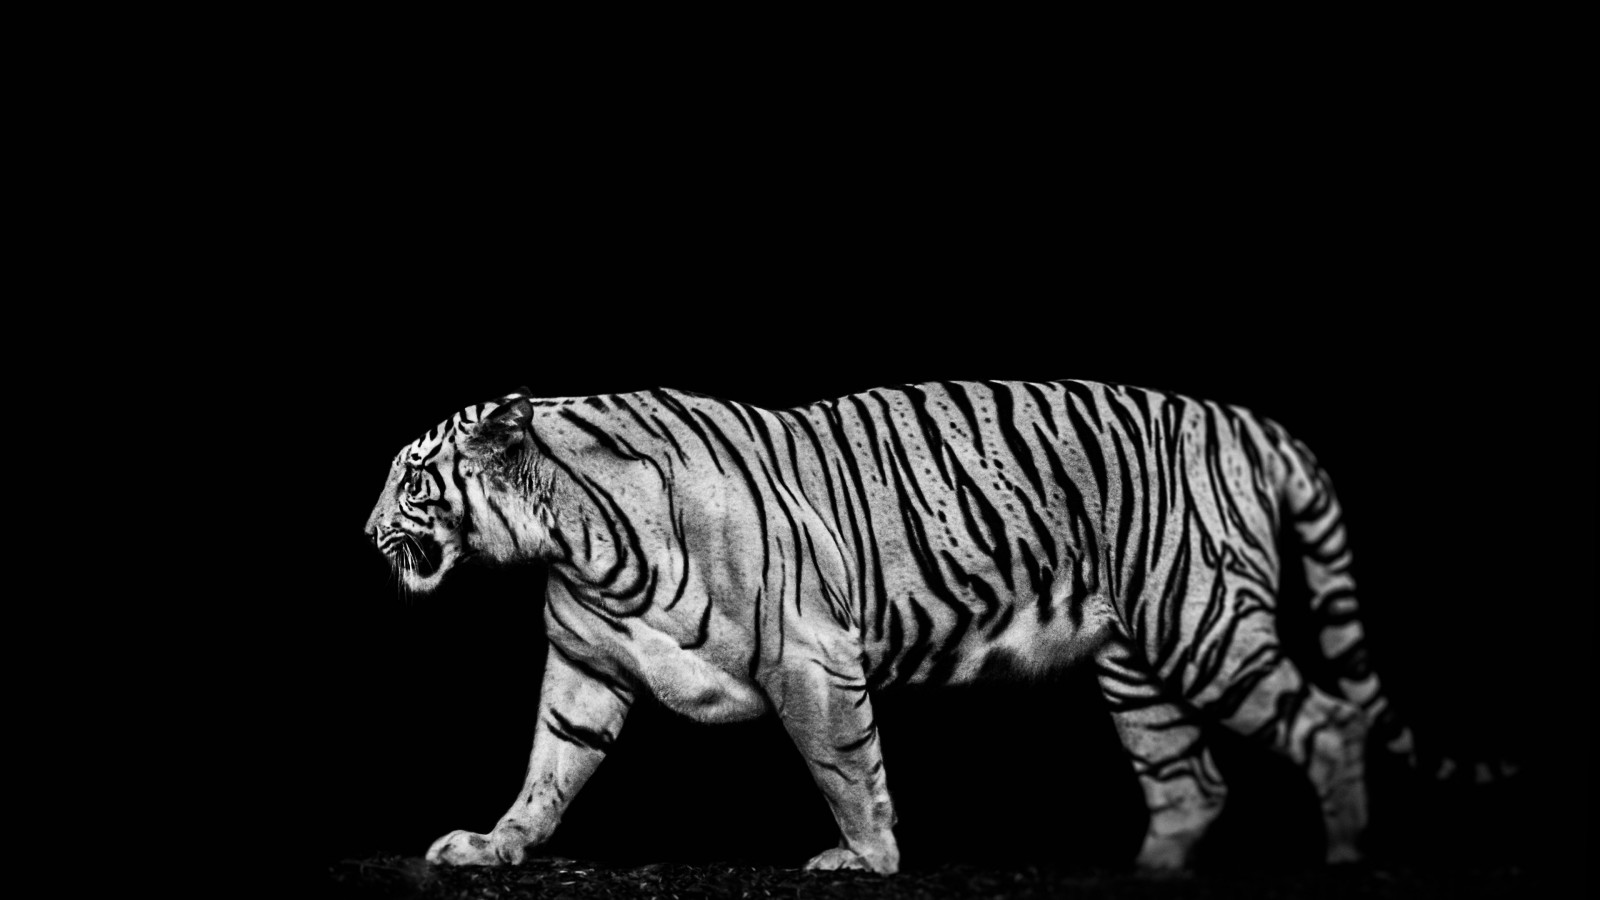 Tiger in the darkness | 1600x900 wallpaper